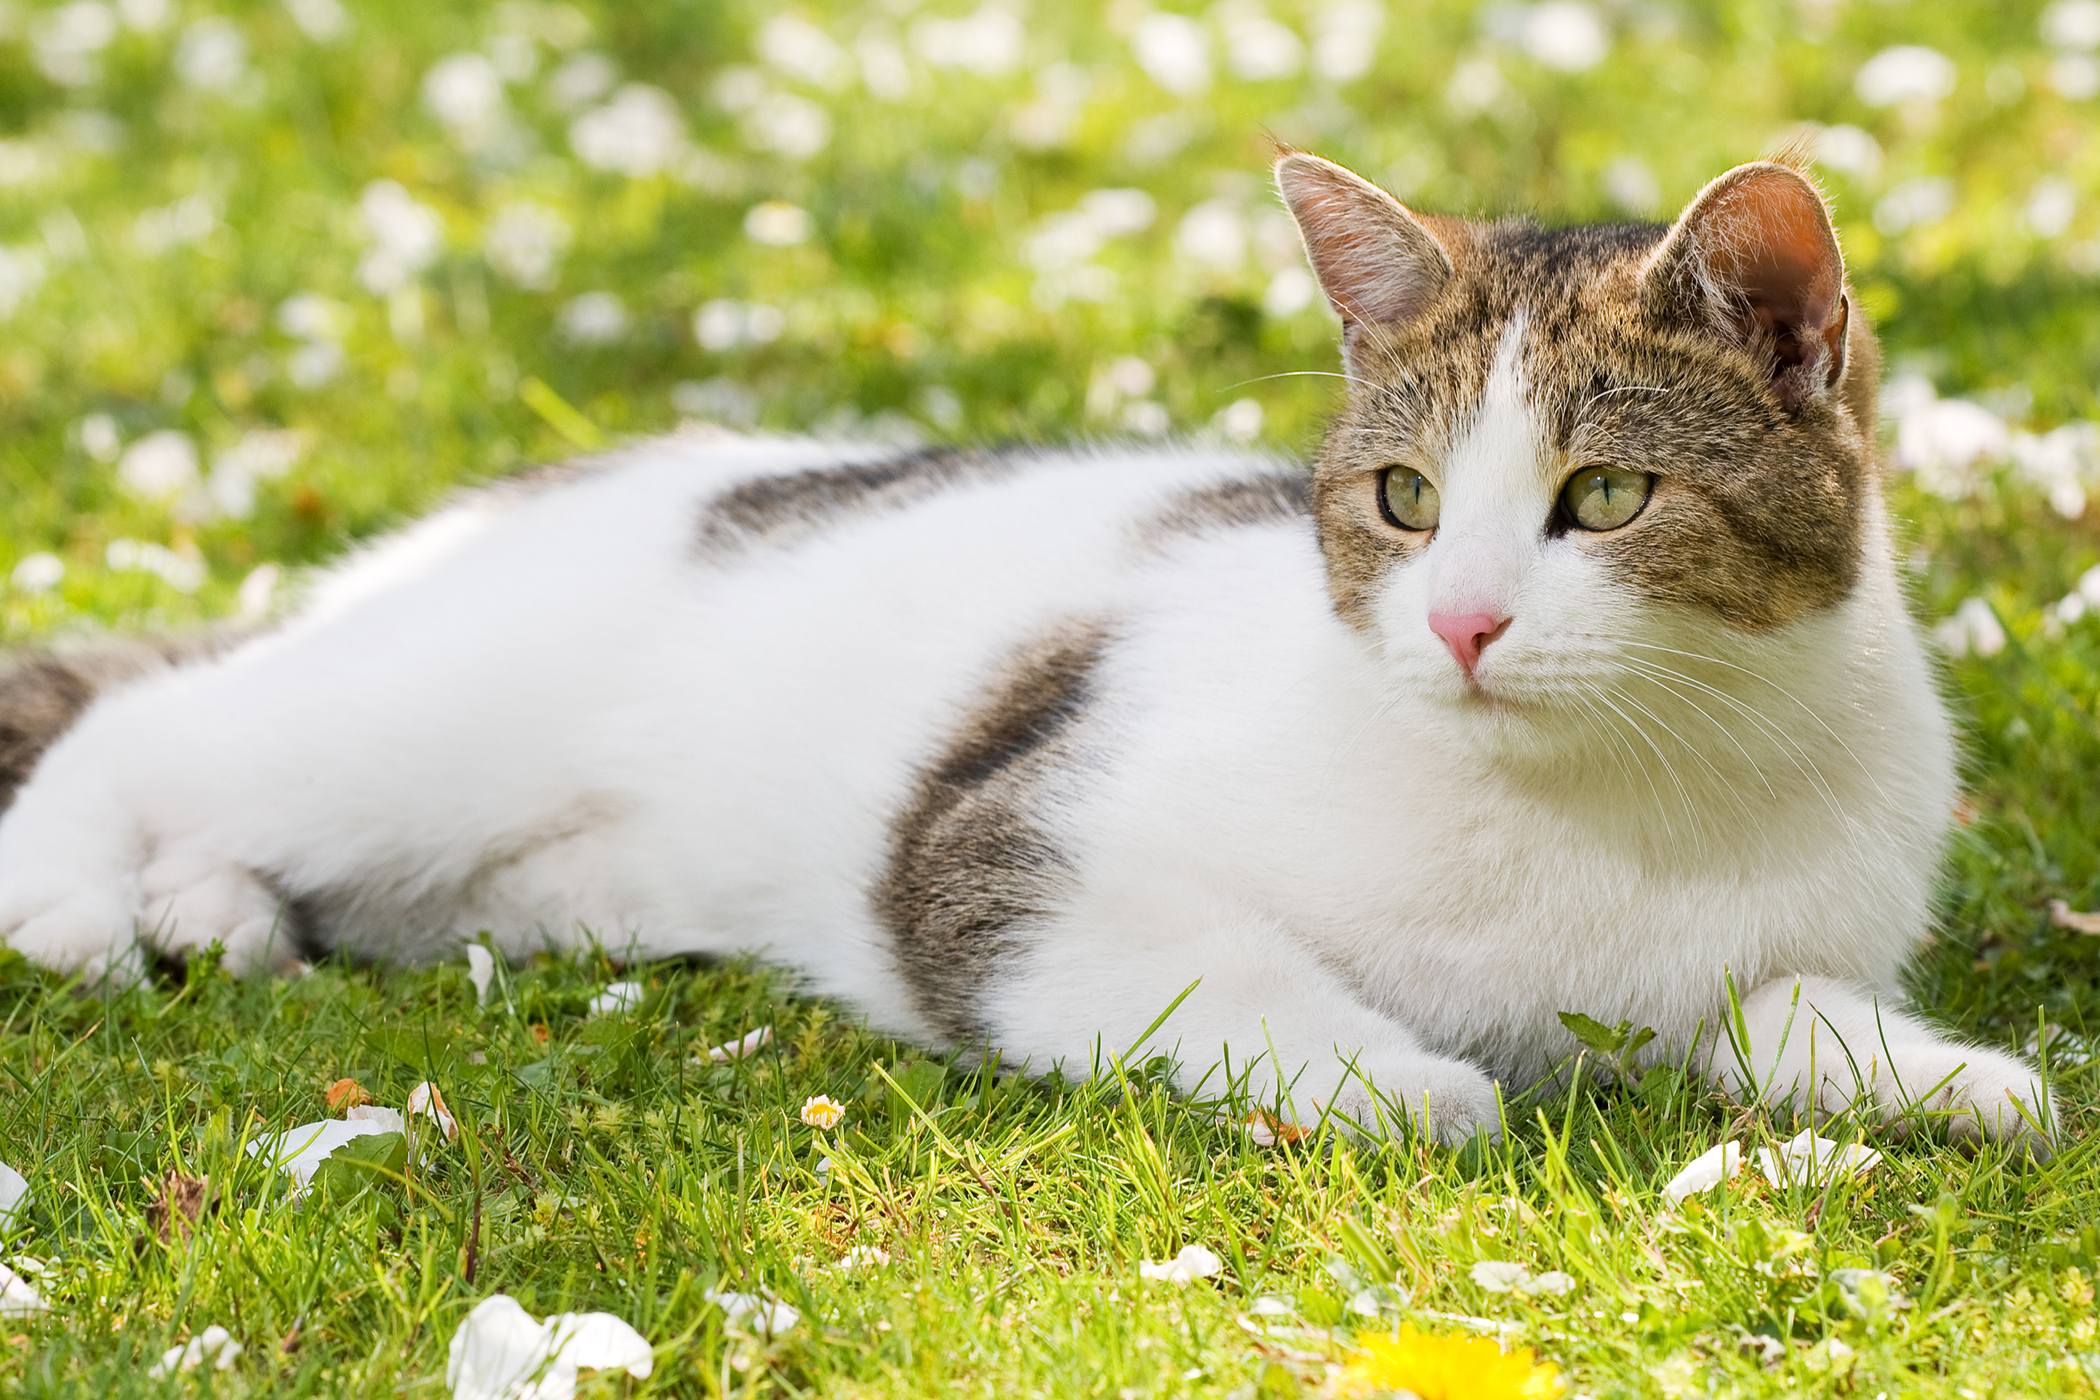 Blue Wilderness Allergy in Cats